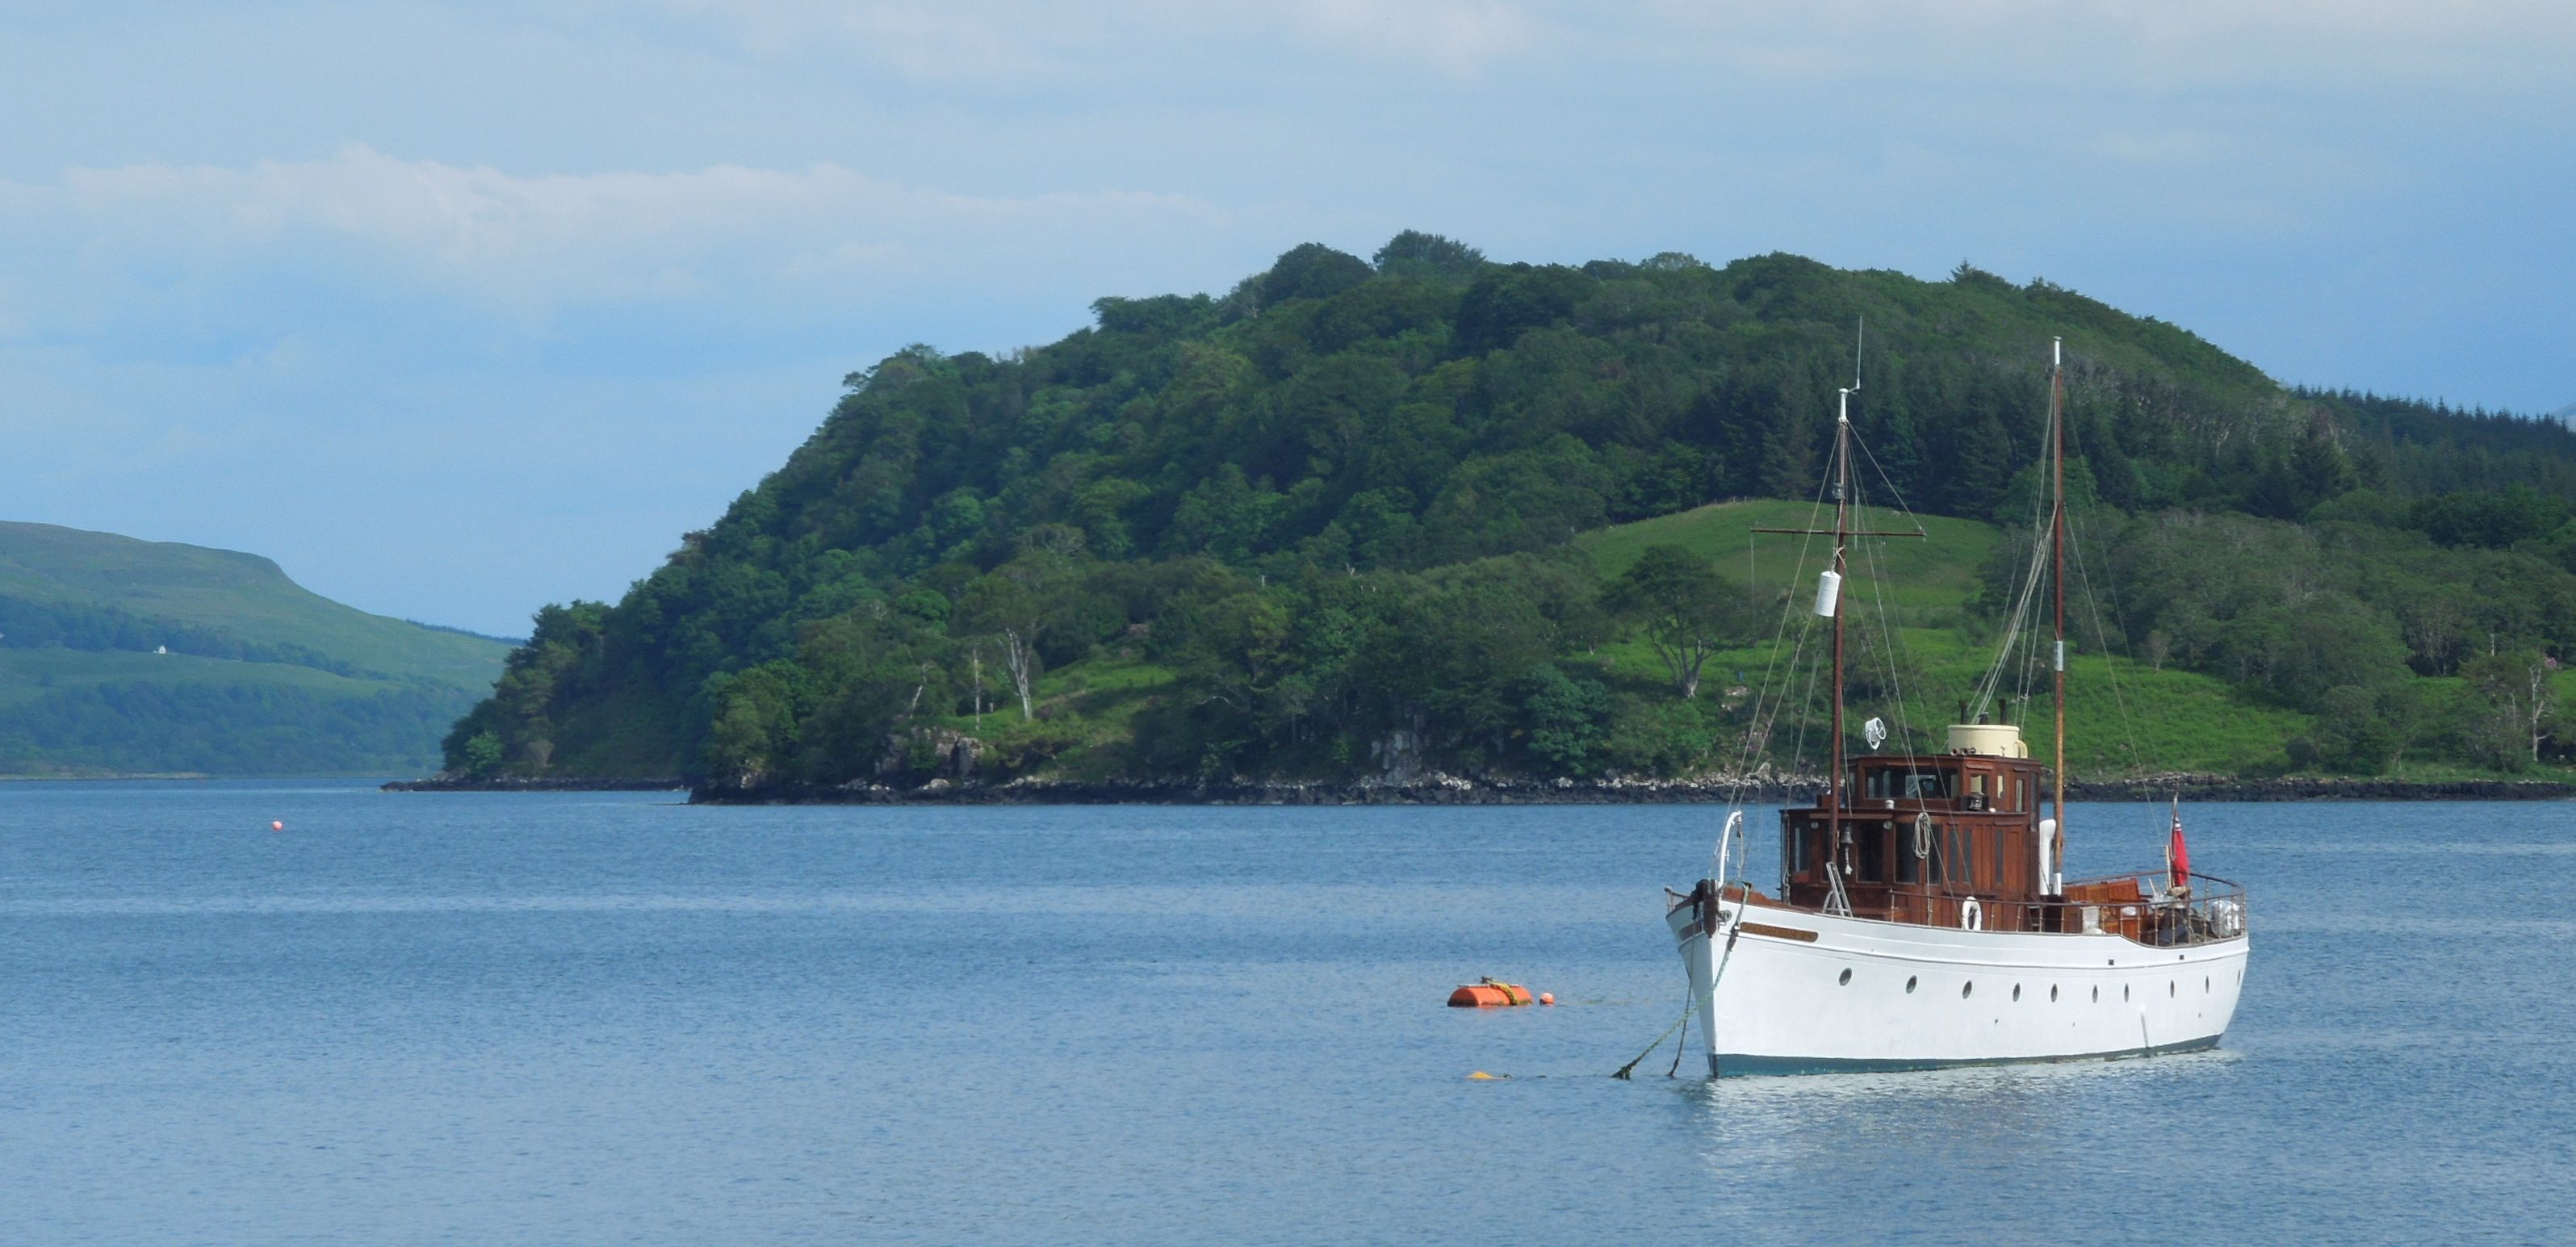 Moored just offshore at Salen